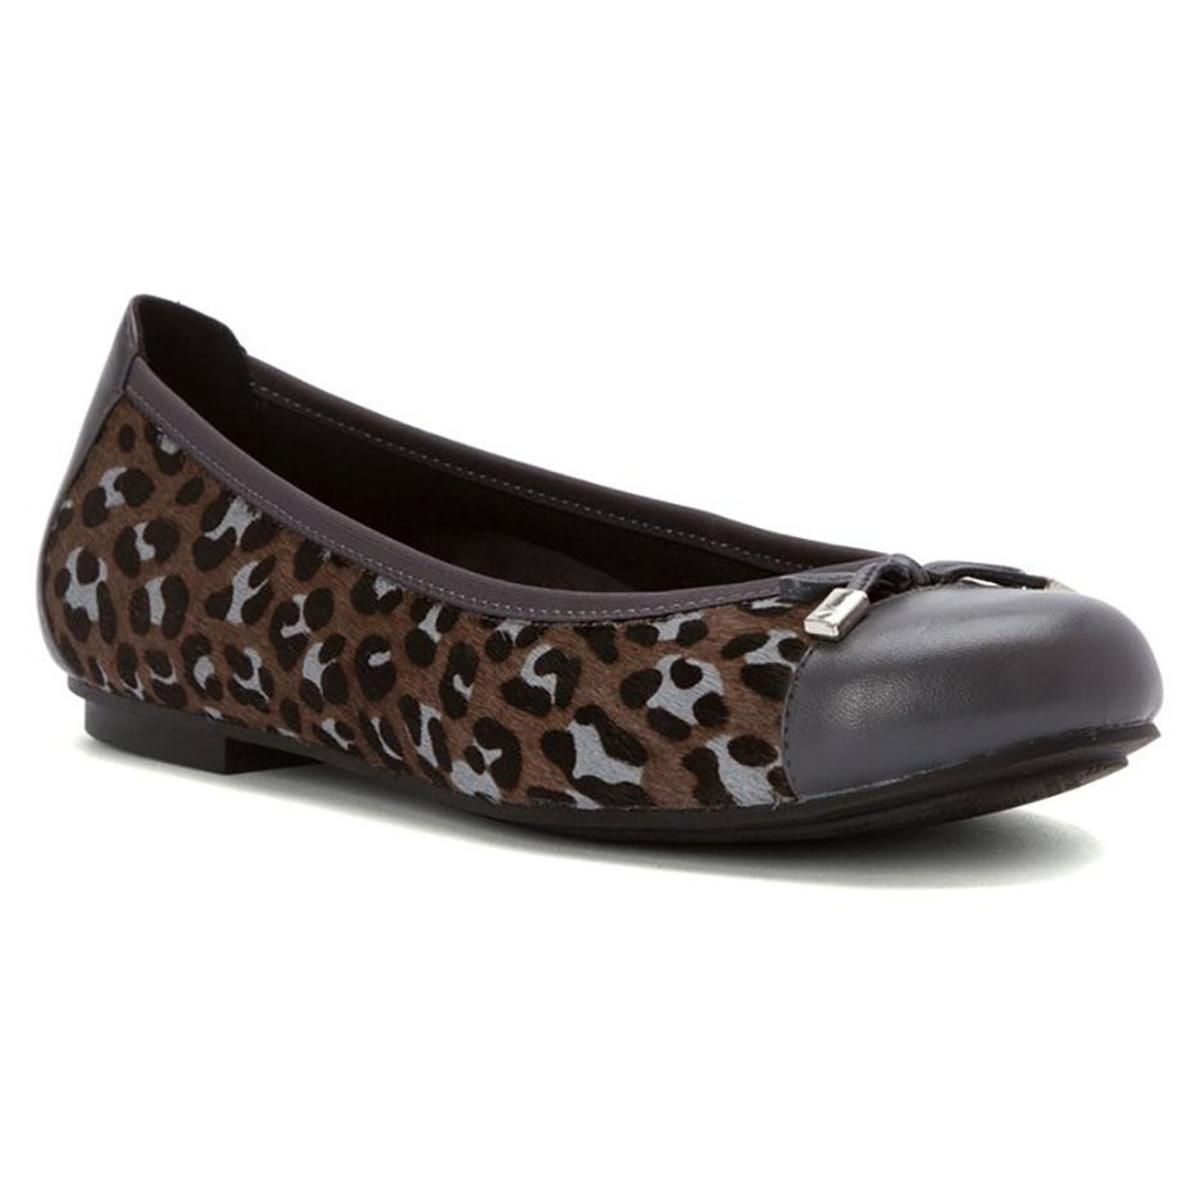 Vionic Minna Patent Leather Cap-Toe Flats